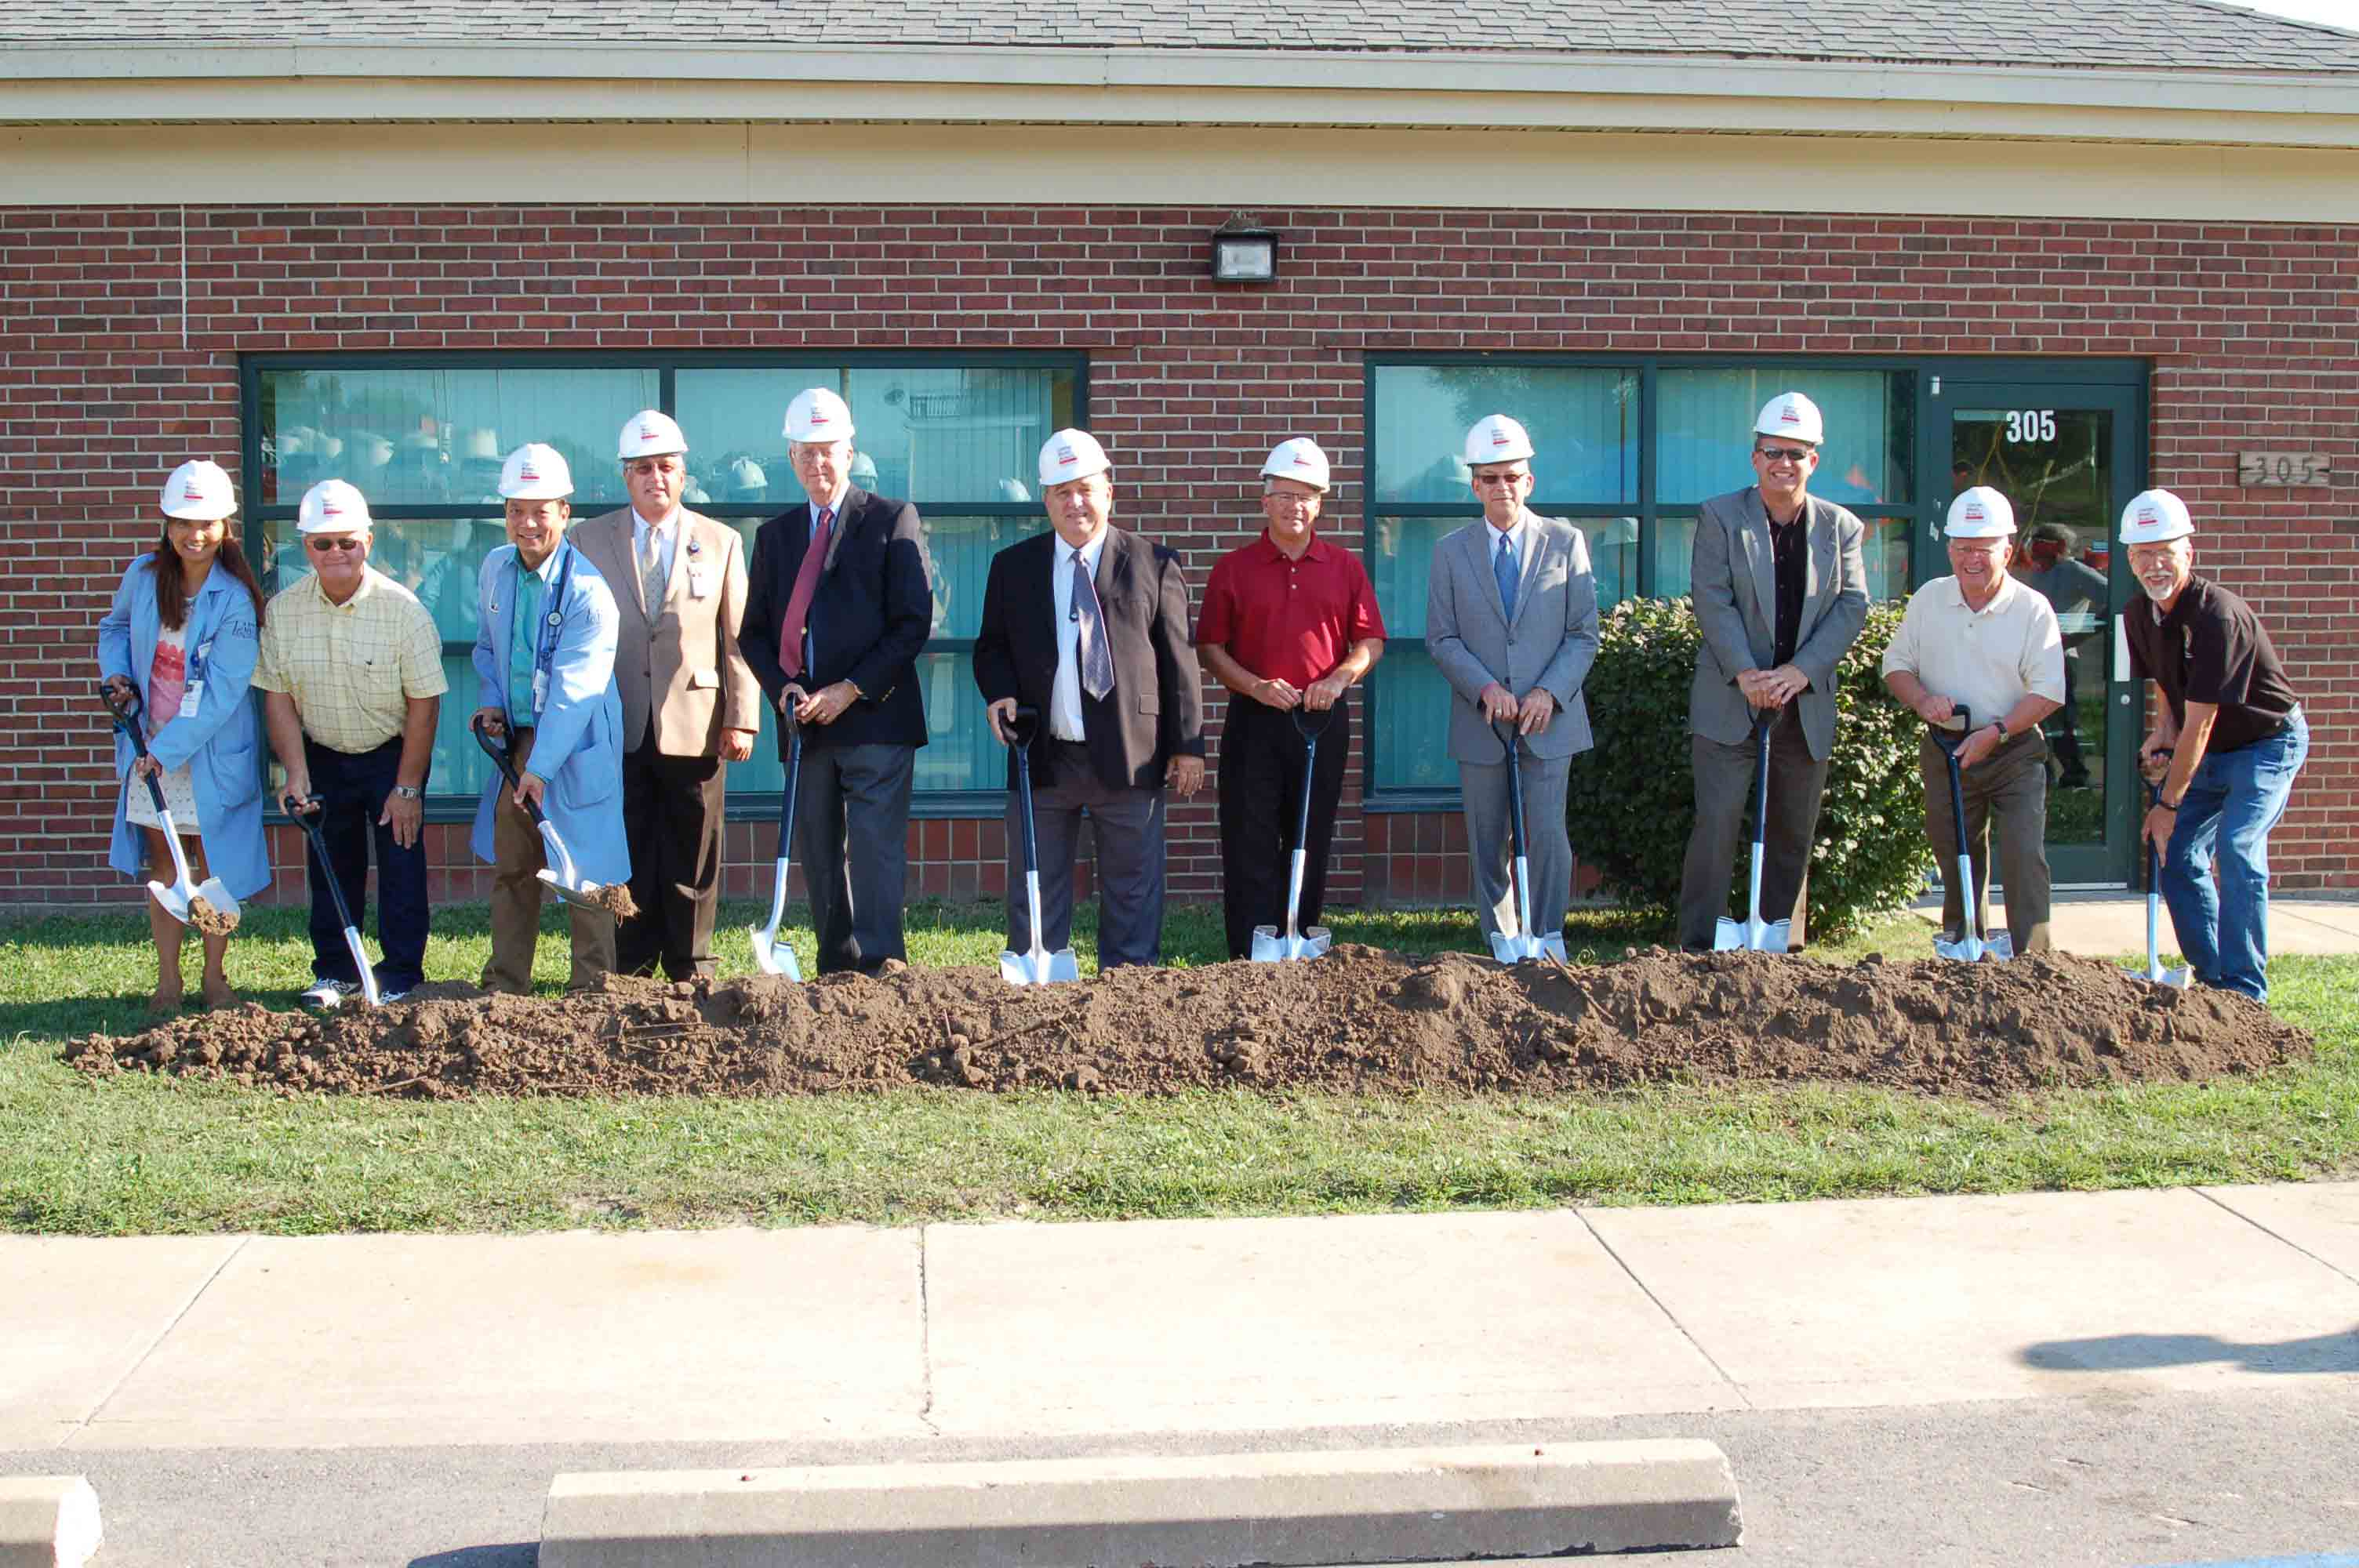 Lake Regional Health System held a groundbreaking Thursday, July 21, to celebrate the upcoming expansion of Lake Regional Clinic – Eldon. Pictured are Lake Regional Clinic – Eldon's Maria Bernabe, M.D., FAAP; Dan Schulte, Curtiss-Manes-Schulte president; Lake Regional Clinic – Eldon's Paul Bernabe, M.D., FAAFP; Michael E. Henze, Lake Regional CEO; John Parrish, Lake Regional board member; Eldon Mayor Larry Henderson; James Judas, Lake Regional board vice president; John Caine, Lake Regional board member; Corey ten Bensel, Lake Regional board president; Larry Shields, Lake Regional board member; and State Rep. David Wood.